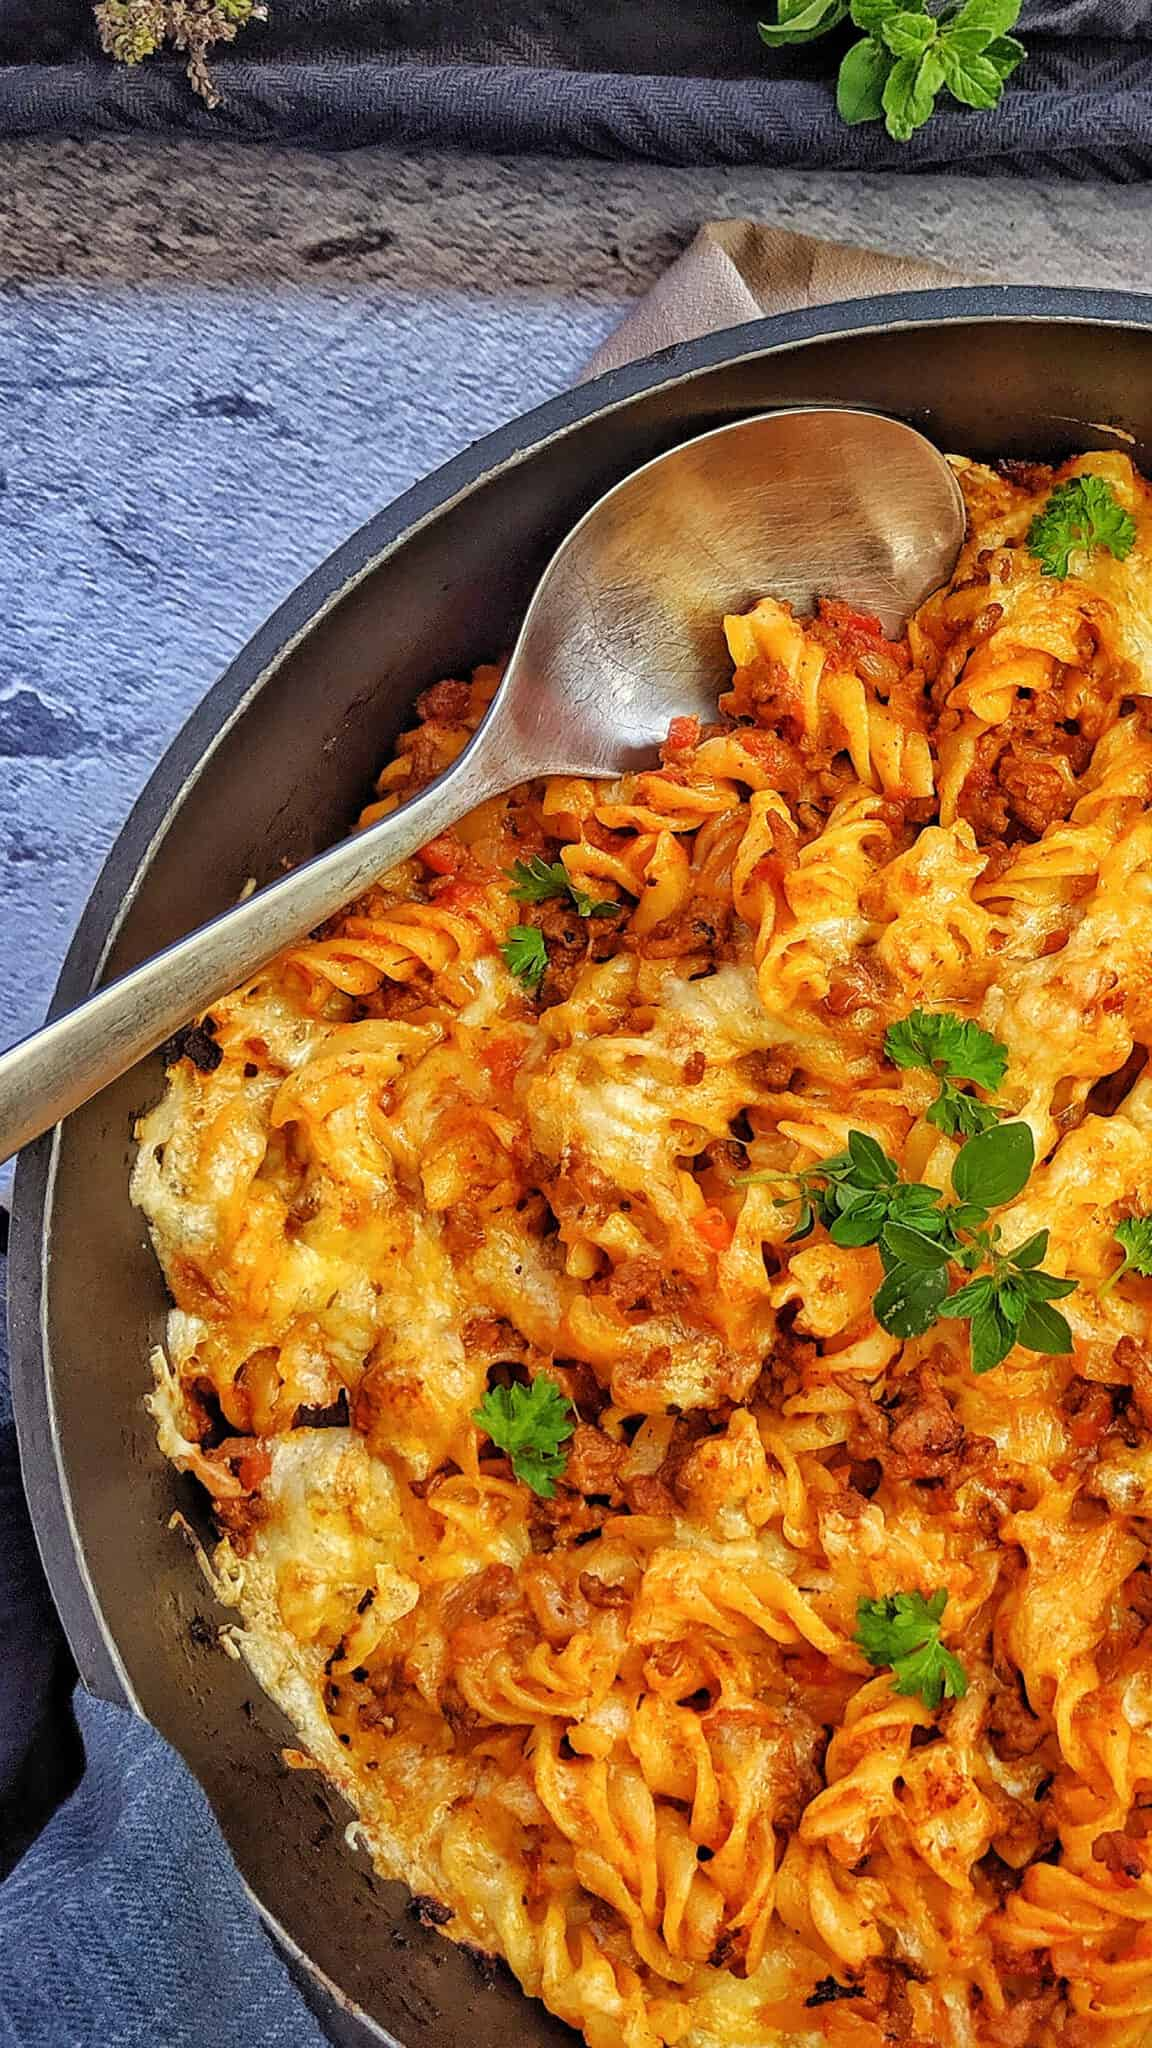 A pan with pasta, minced meat casserole.